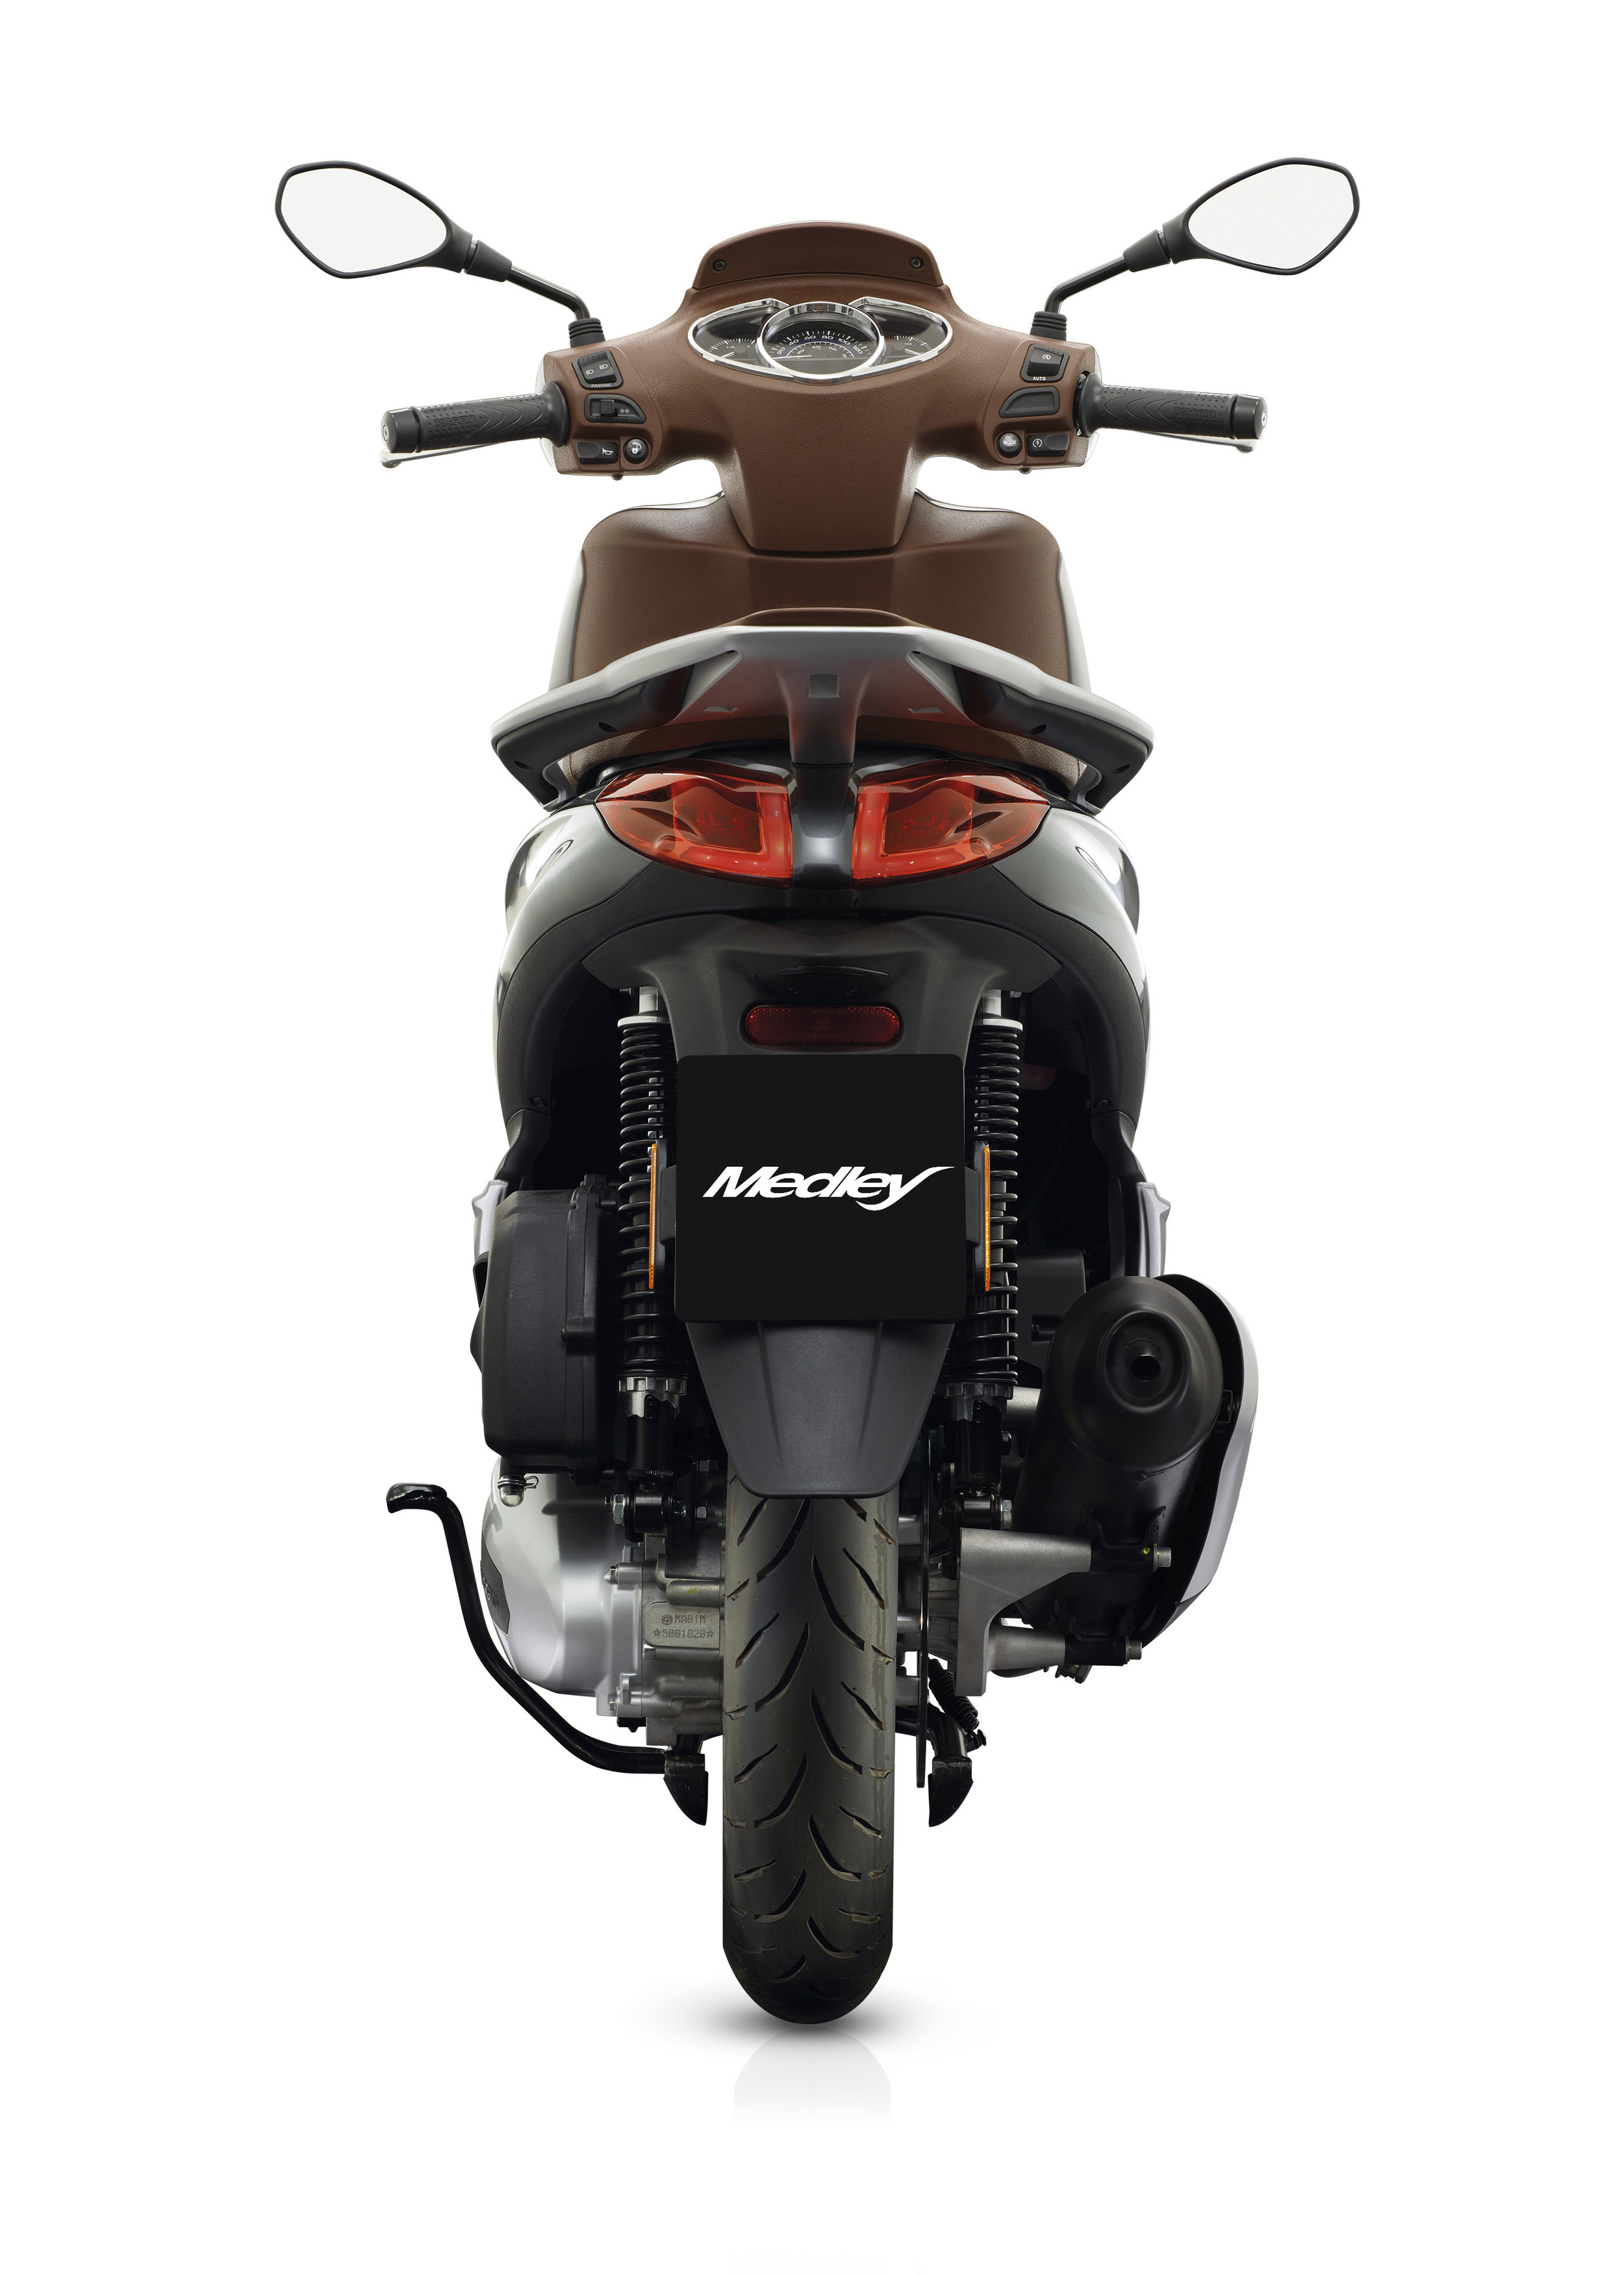 Piaggio Medley 125 equipped lateral dx 05.jpg